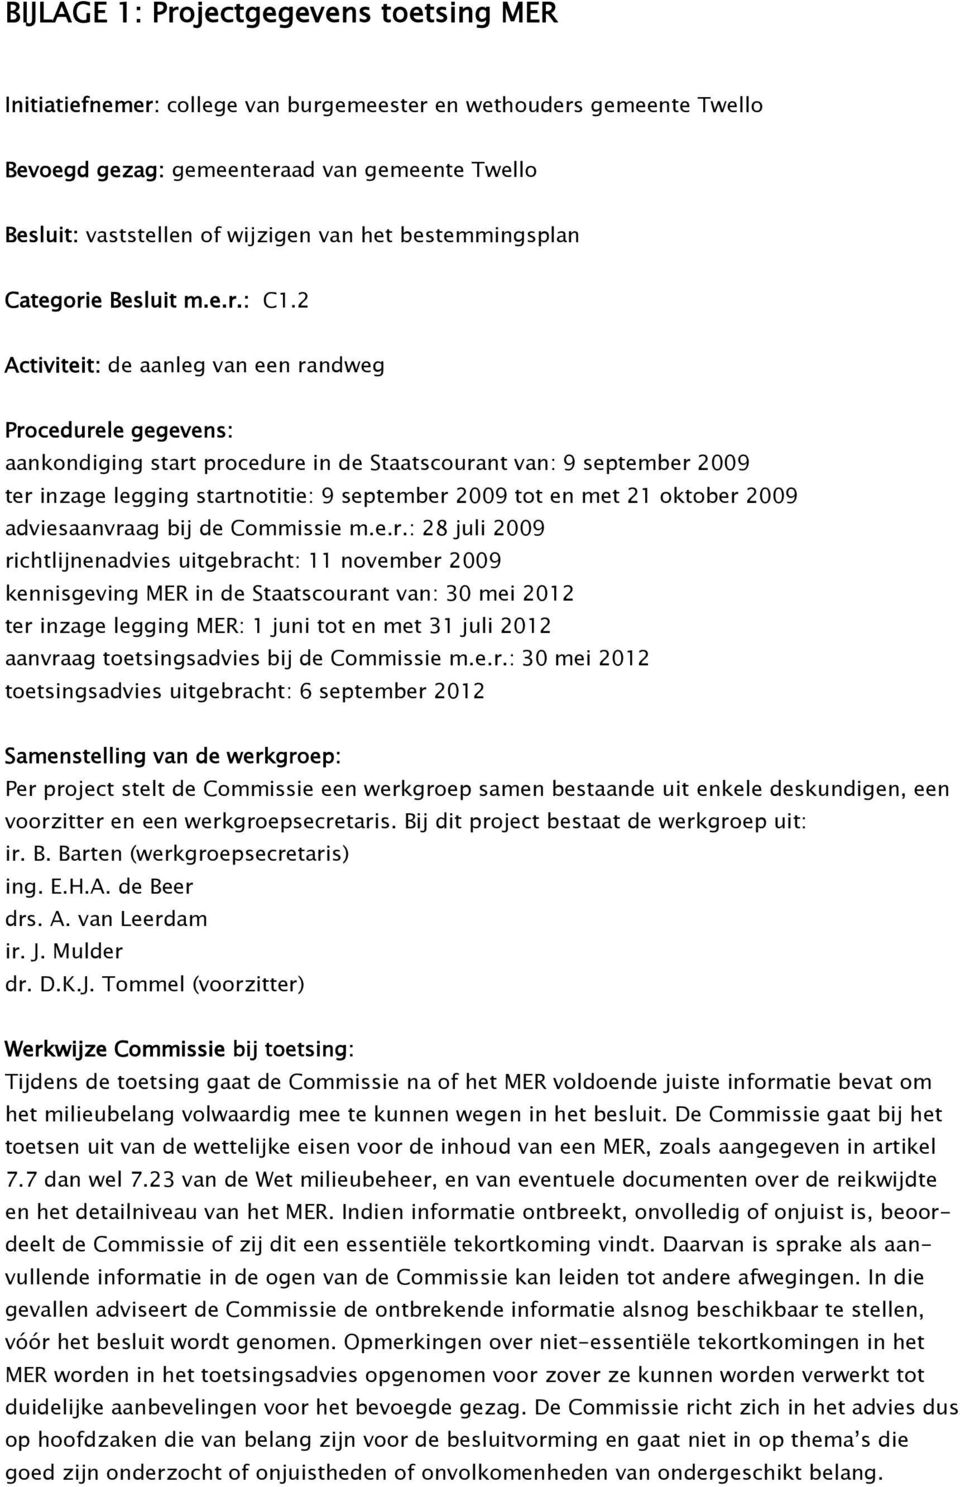 2 Activiteit: de aanleg van een randweg Procedurele gegevens: aankondiging start procedure in de Staatscourant van: 9 september 2009 ter inzage legging startnotitie: 9 september 2009 tot en met 21